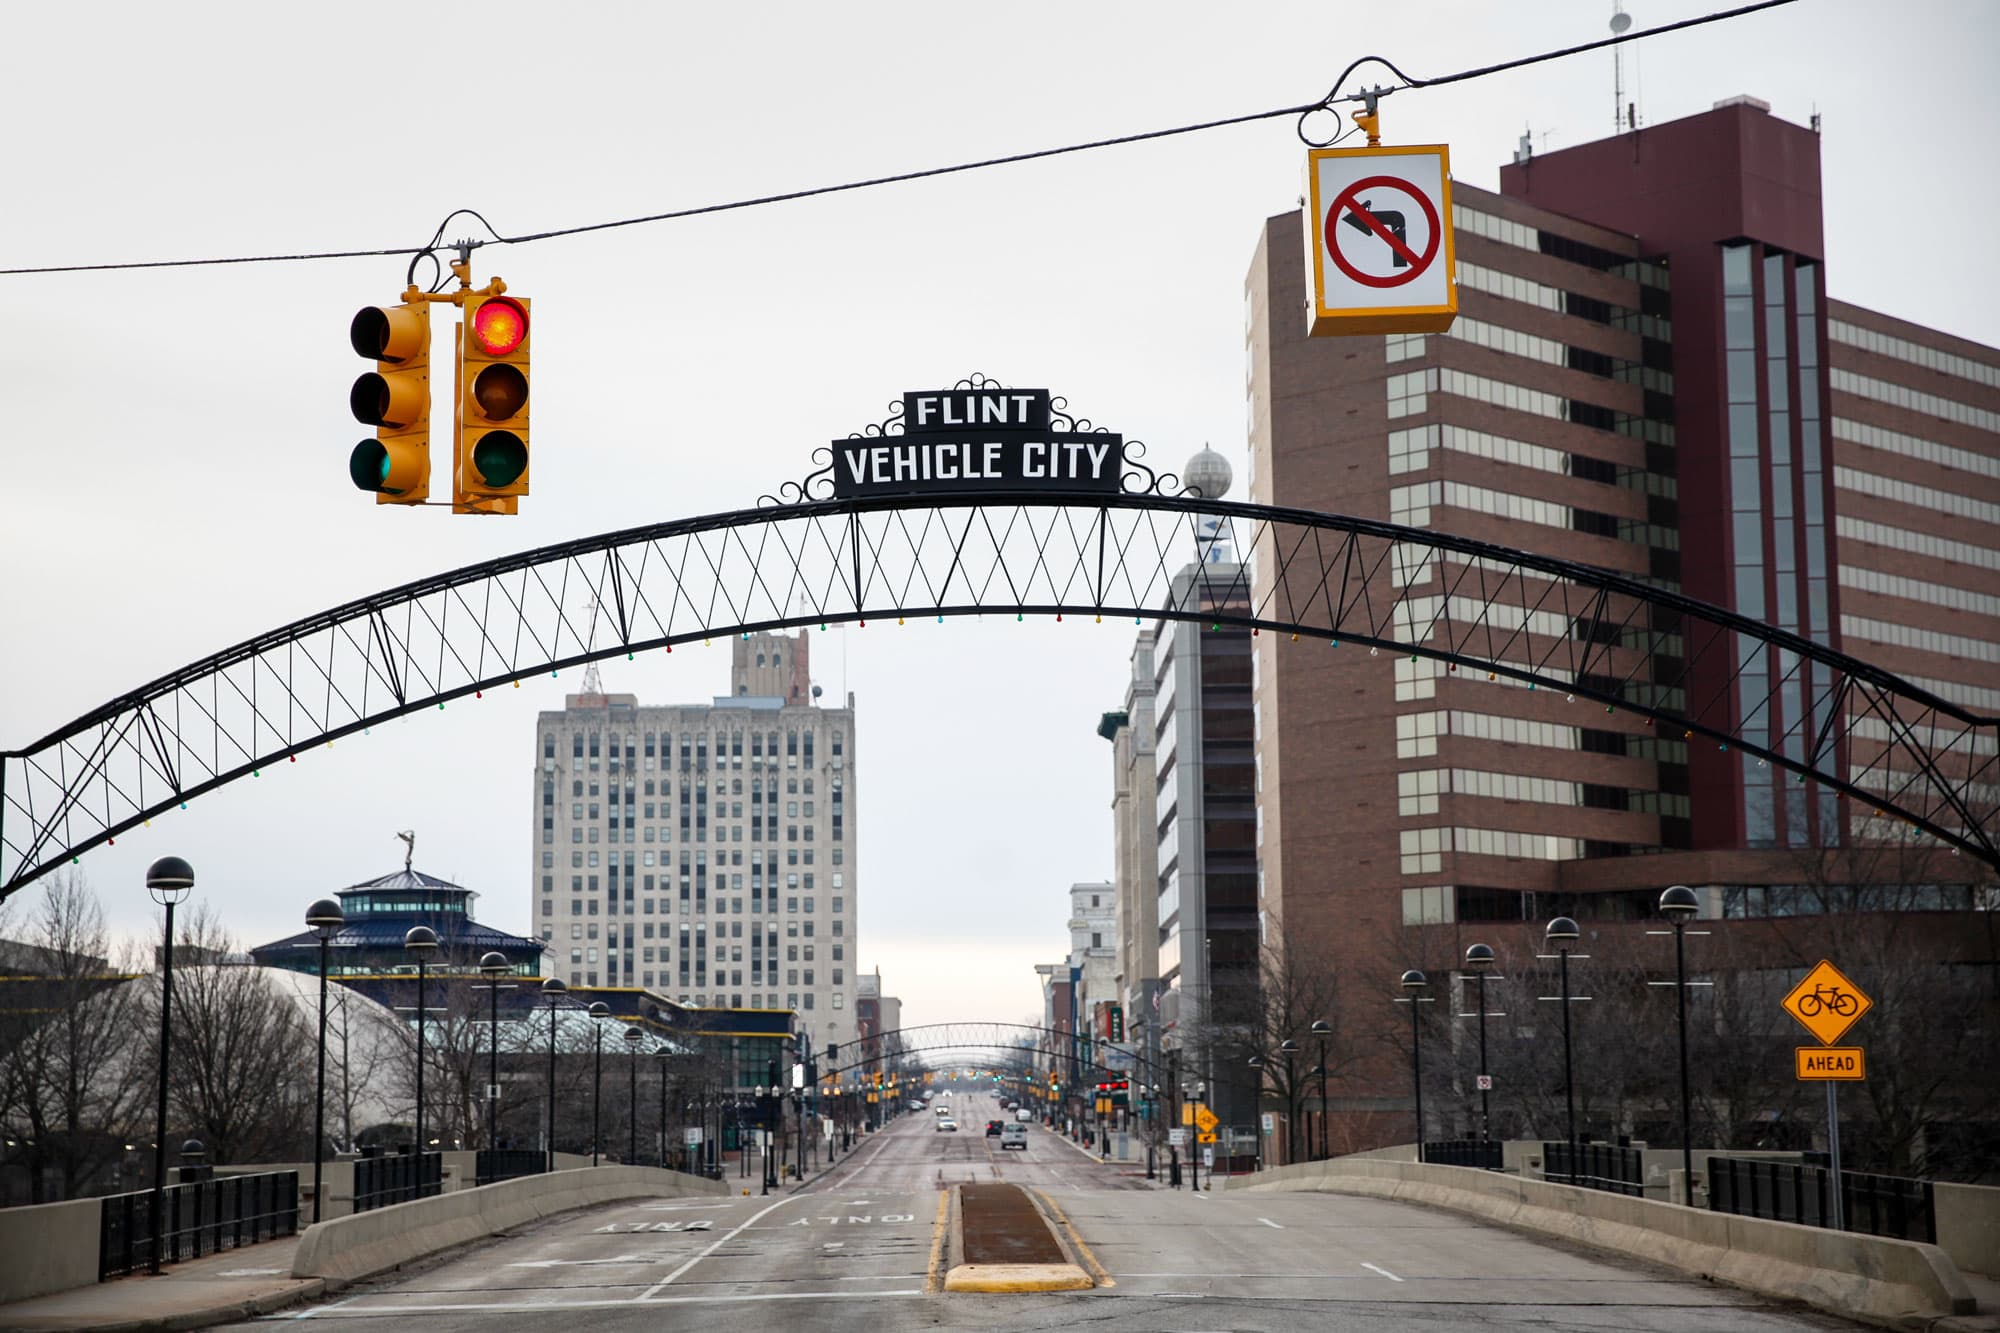 Saginaw Street in downtown is shown on February 7, 2016 in Flint, Michigan.